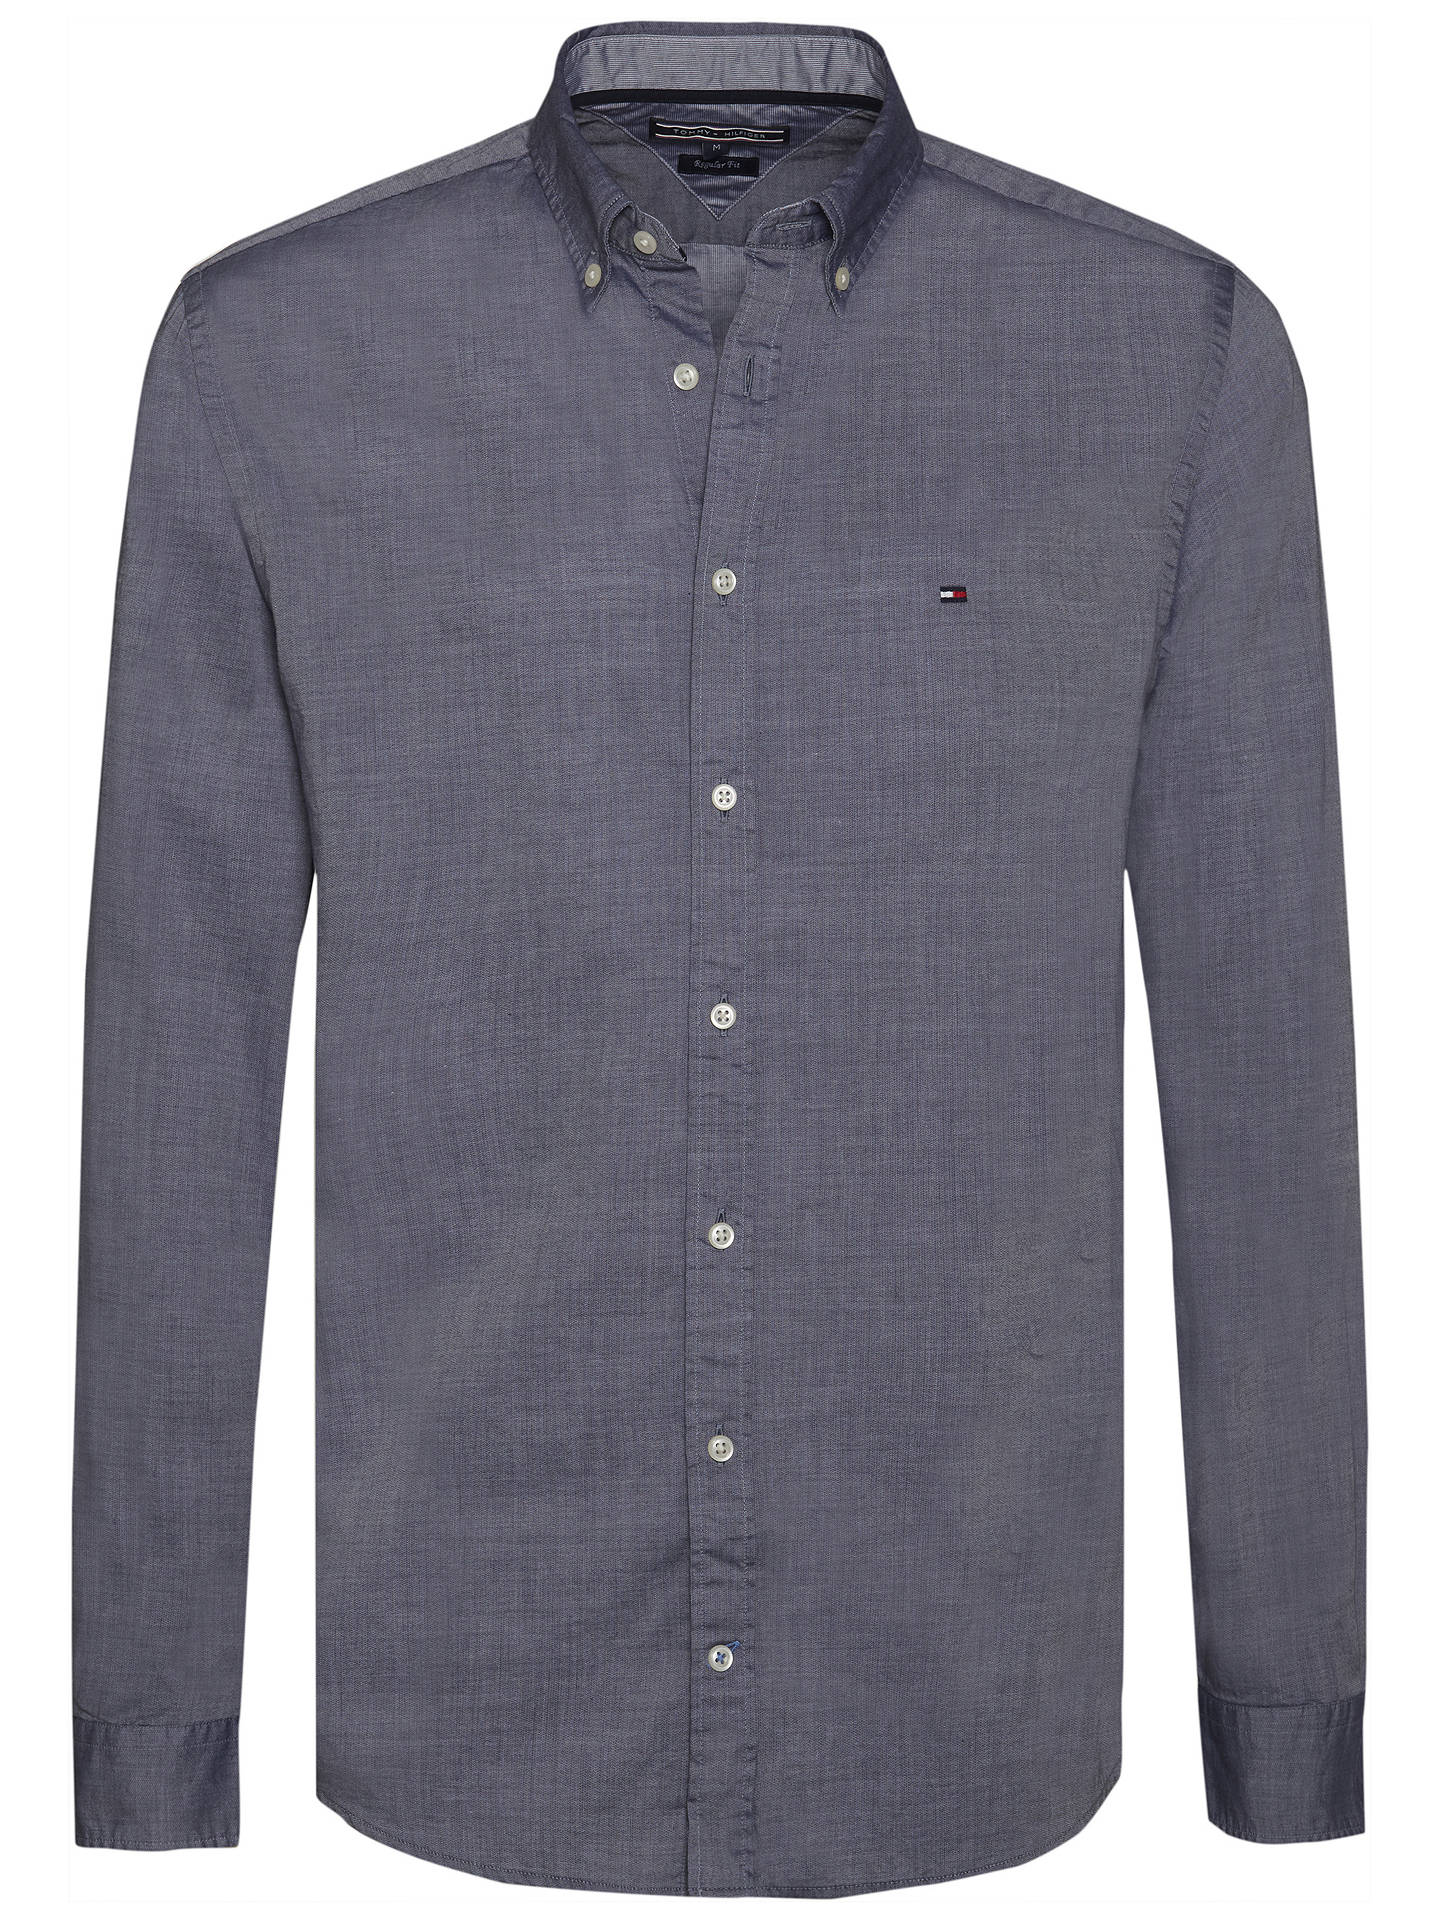 4a068a09 ... Buy Tommy Hilfiger Two Tone Dobby Shirt, Navy, S Online at  johnlewis.com ...